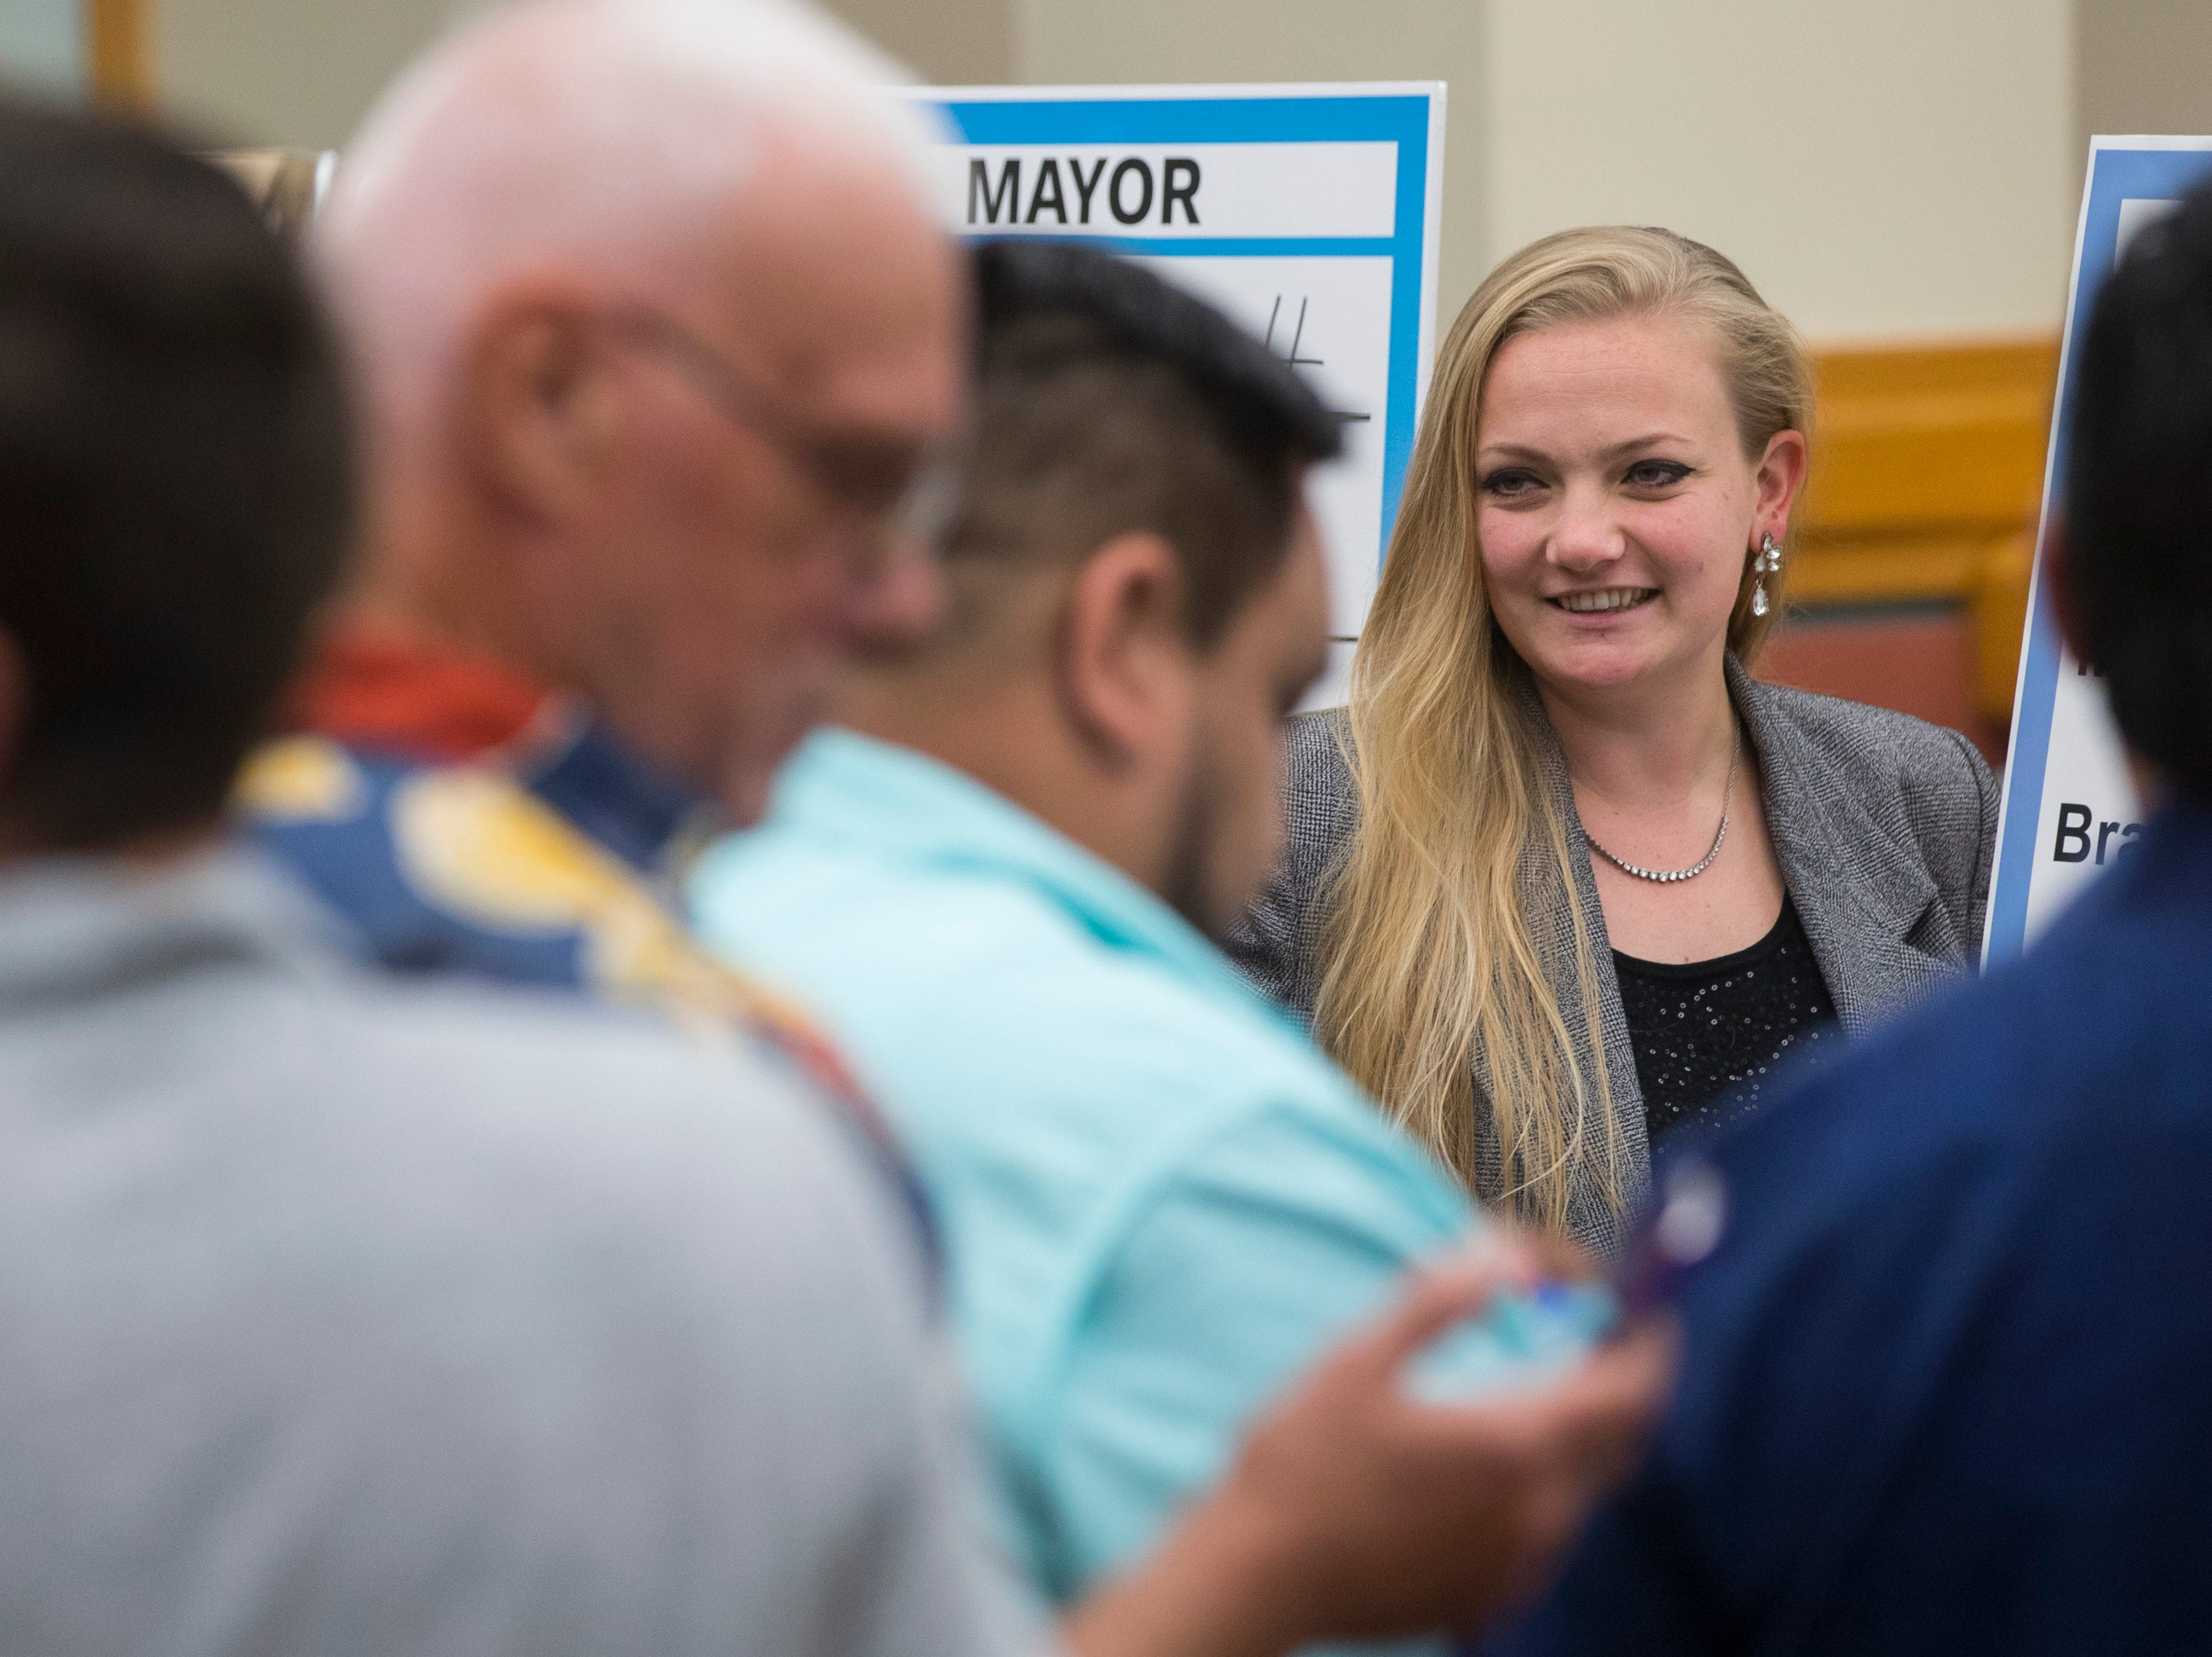 City Council candidate Kaylynn Paxson talks with other candidates after drawing for their ballot order on Thursday, August 23, 2018 at City Hall.